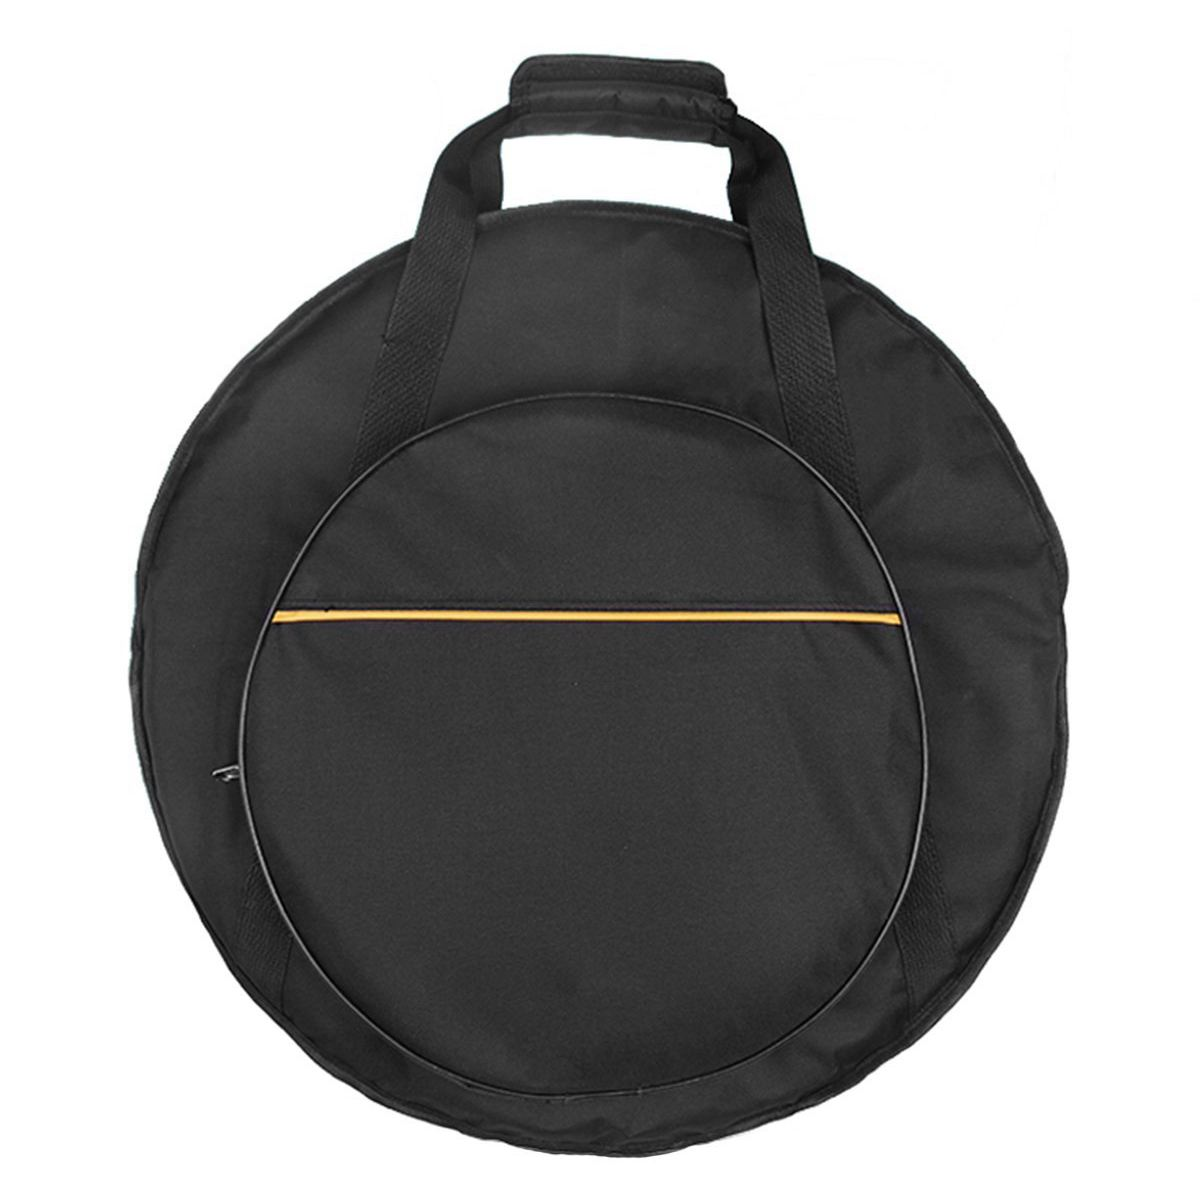 DCOS-22 inch Gig Bag with 10mm Padding